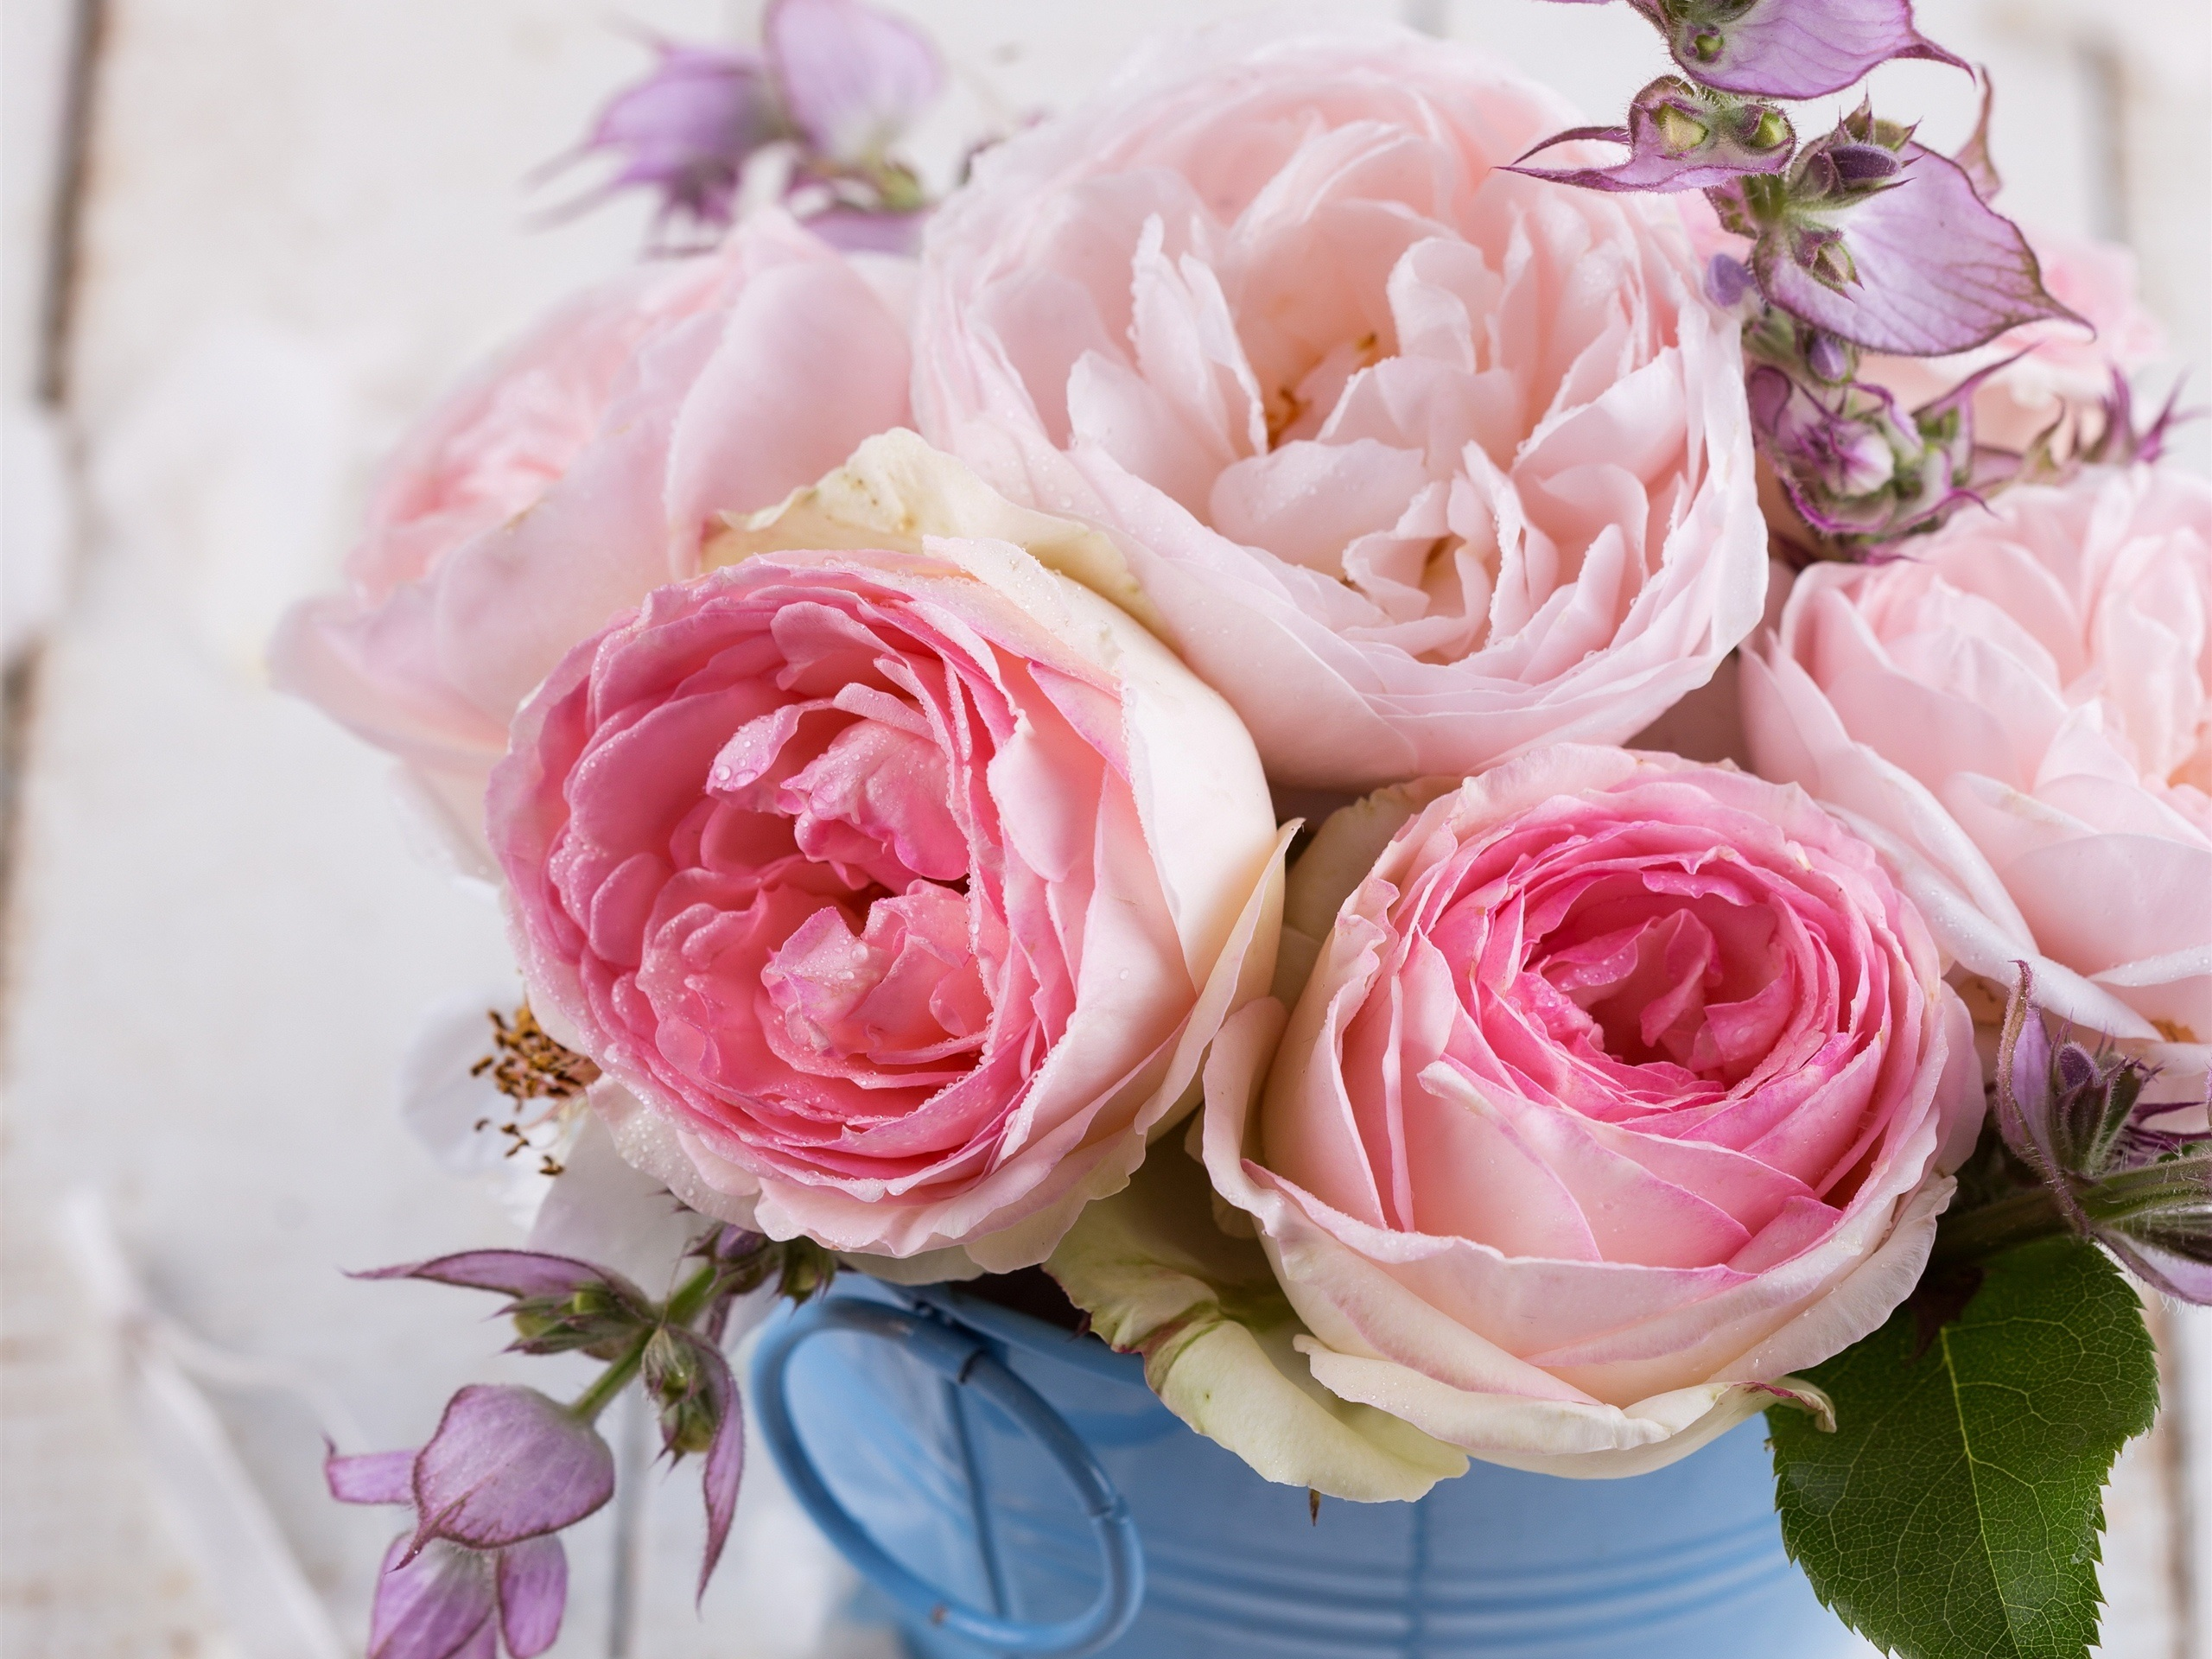 Wallpaper Pink Roses Flowers Bouquet 2560x1920 Hd Picture Image